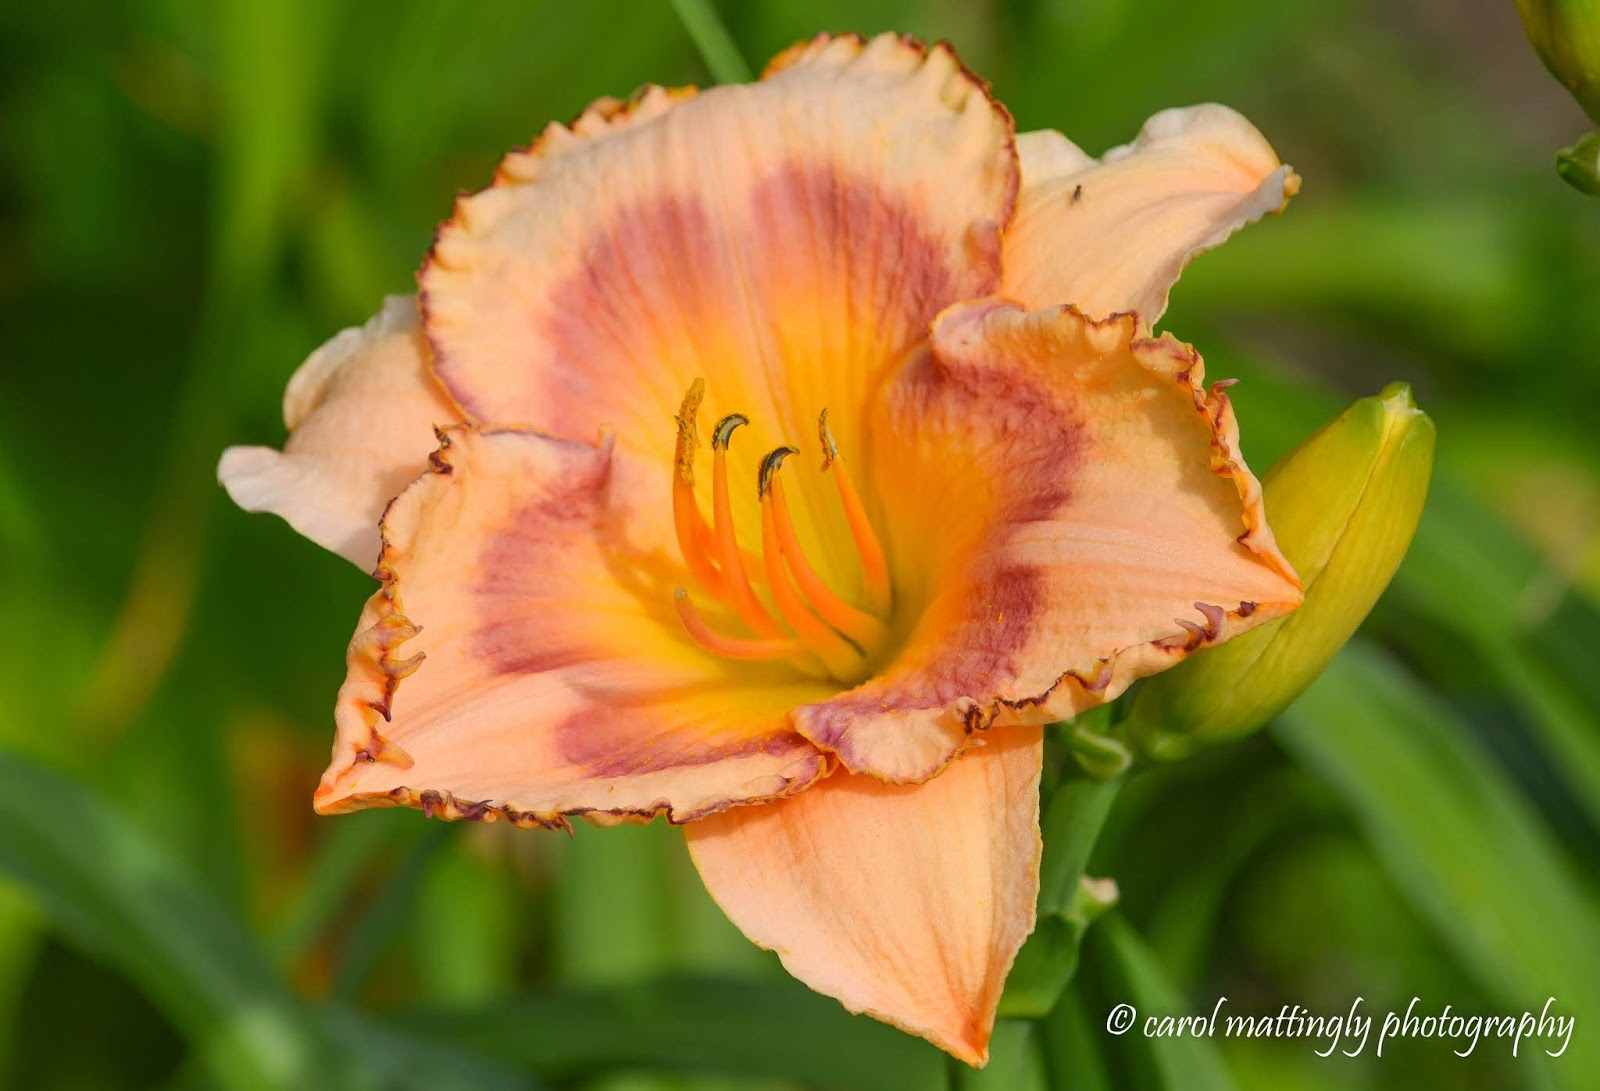 Carol mattingly photography orange peach ruffled apricot as i walked around the flower gardens i happened upon this beautiful day lily with a two toned hue i had never seen this species before nor had i seen the izmirmasajfo